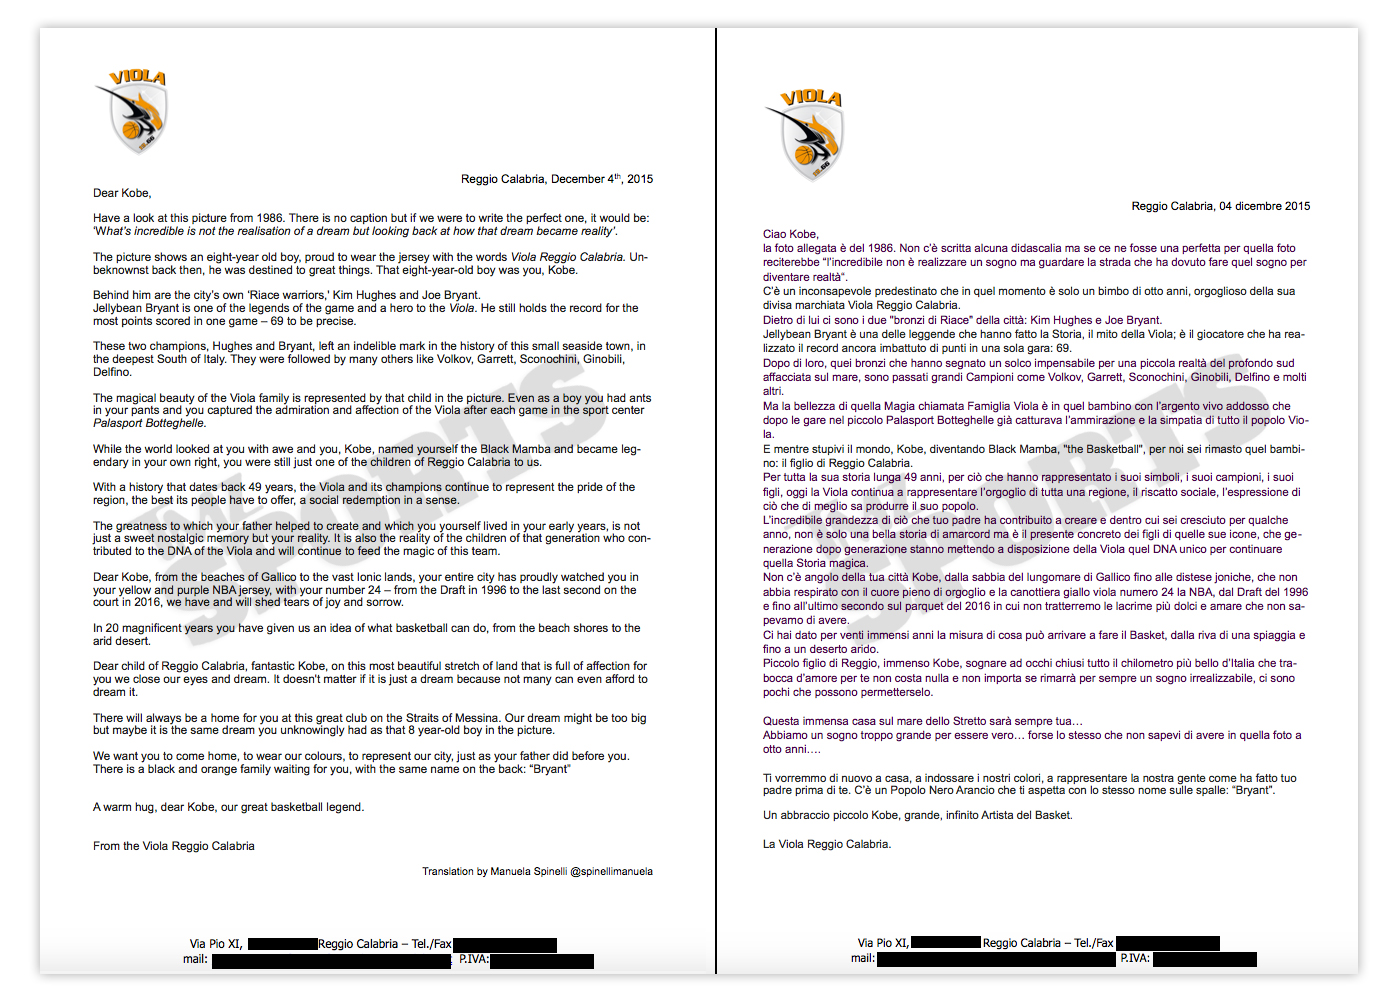 a7b68a491ac4 The team got word that Kobe has been kicking around the idea of playing  overseas -- and reached out through an open letter ...